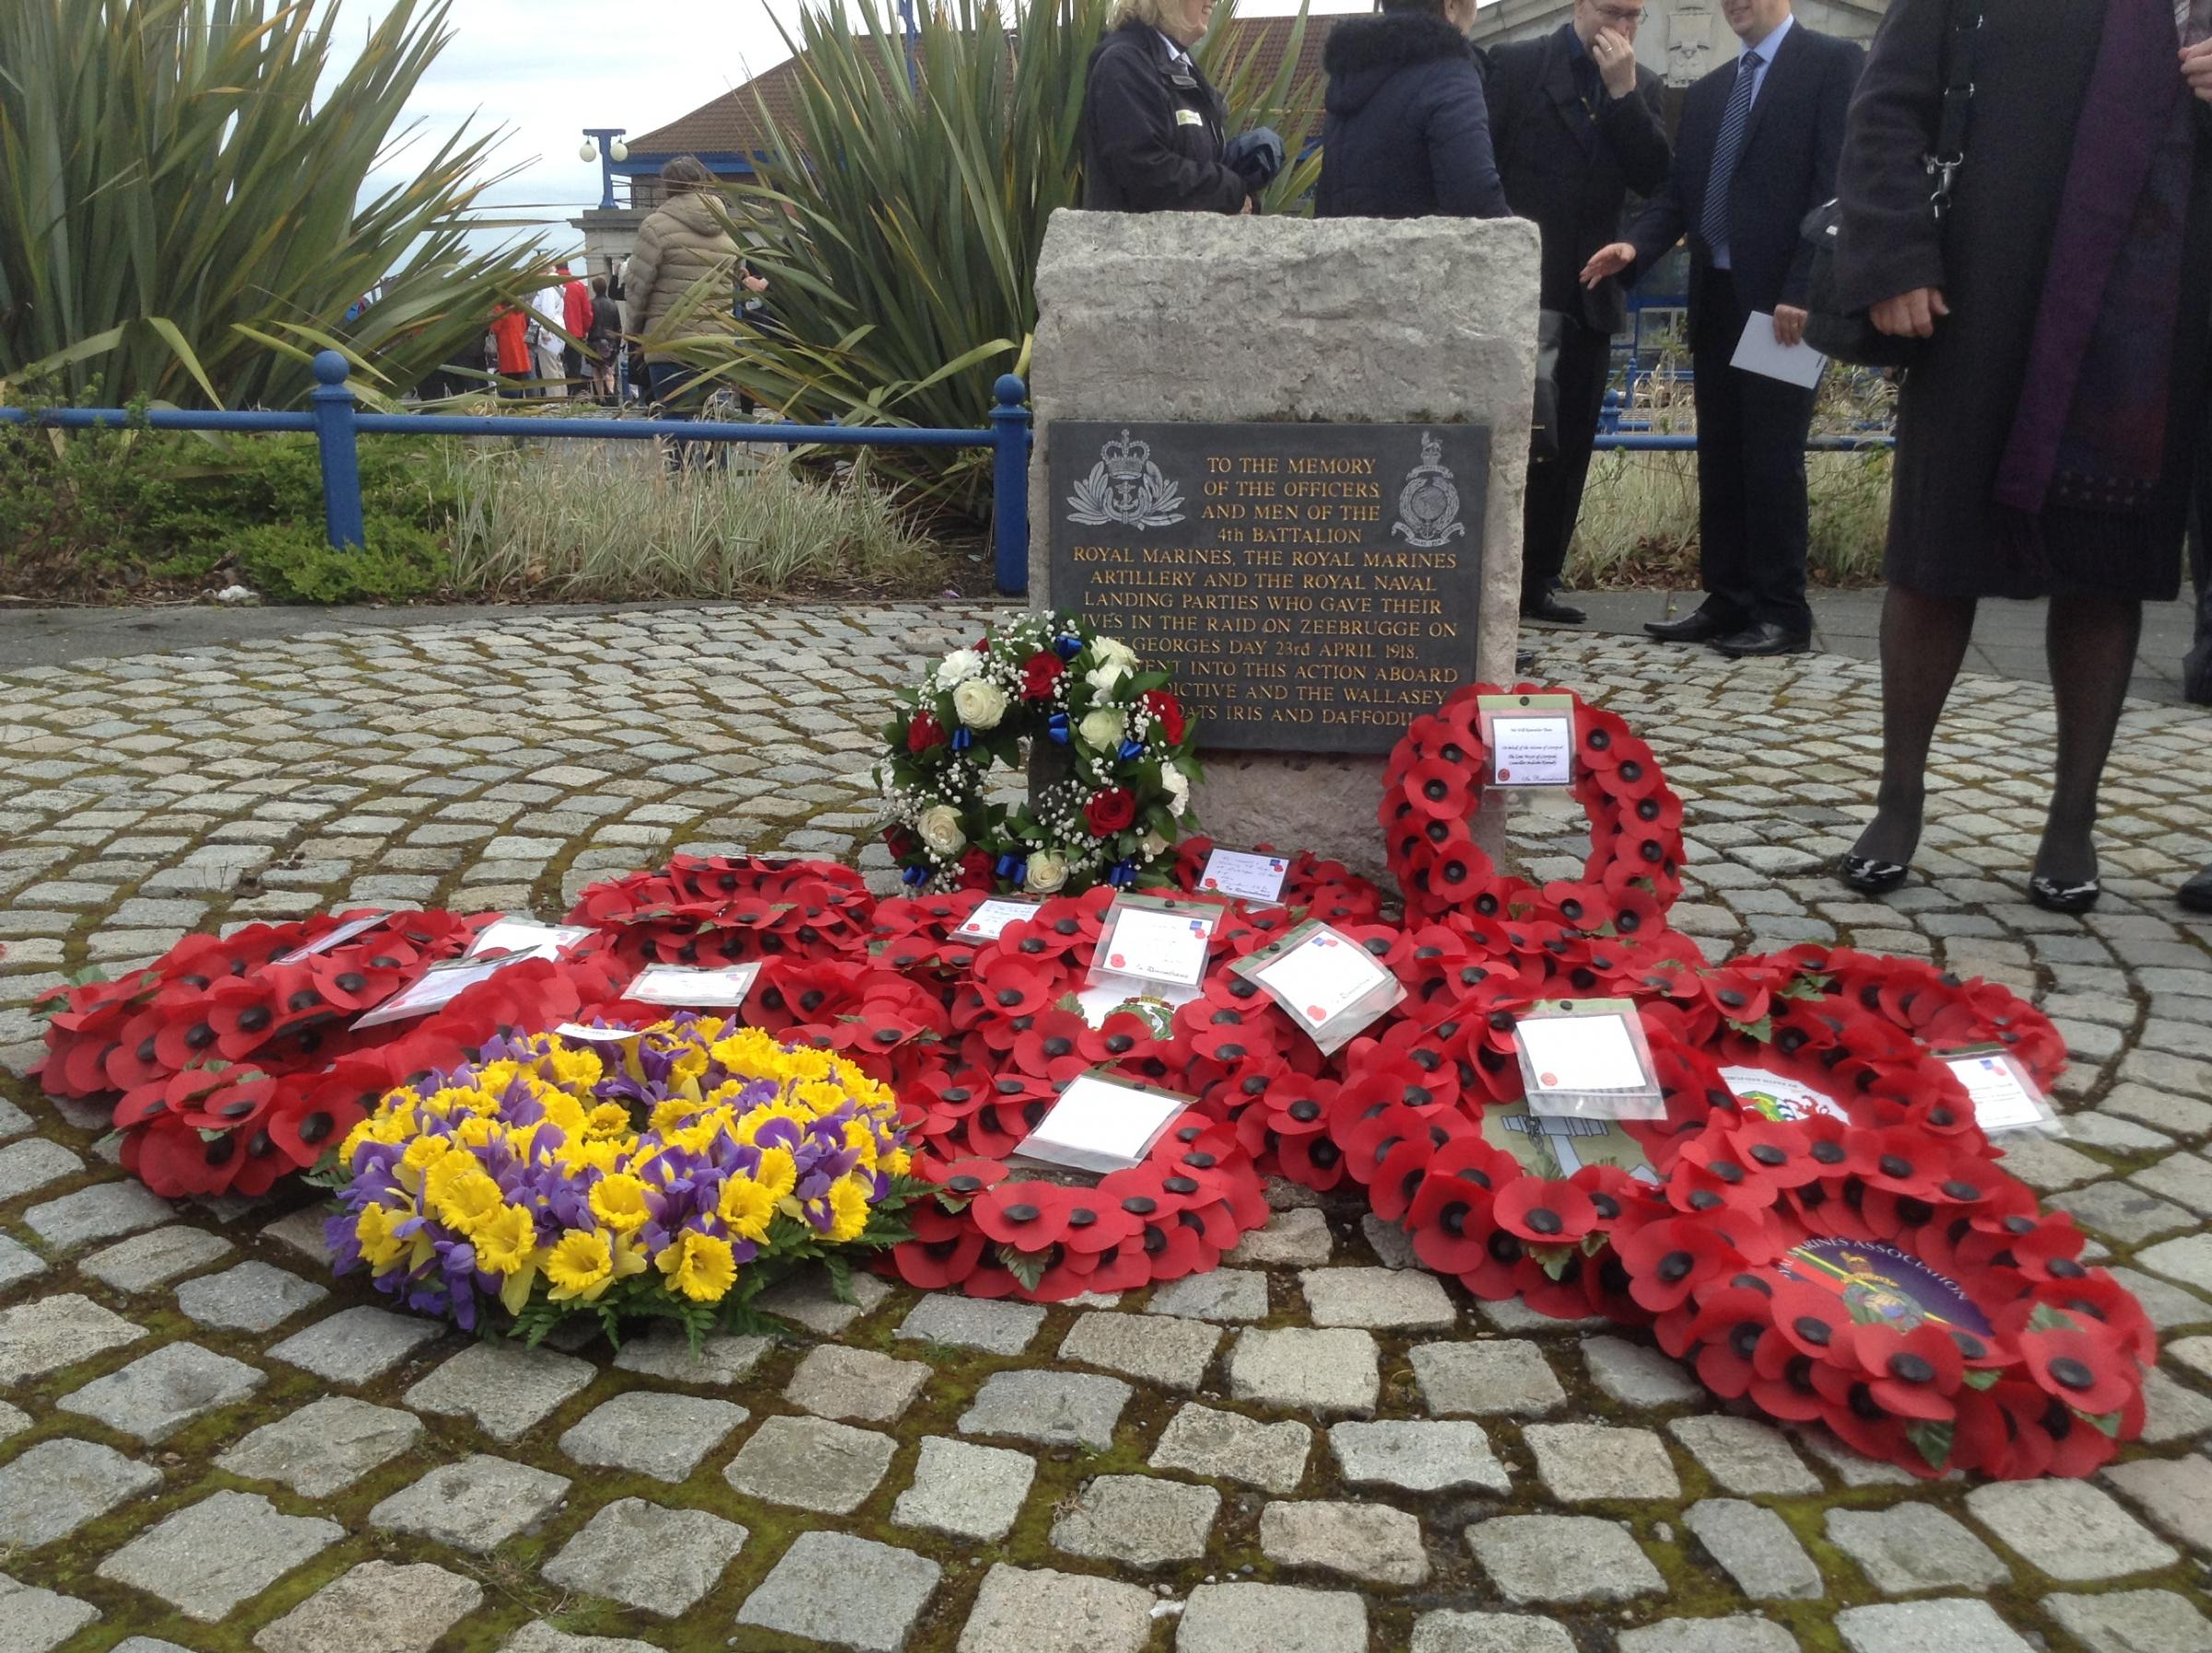 Wreaths laid at the Zeebrugge memorial stone at Seacombe Ferry this morning. Pictures and video by Craig Manning